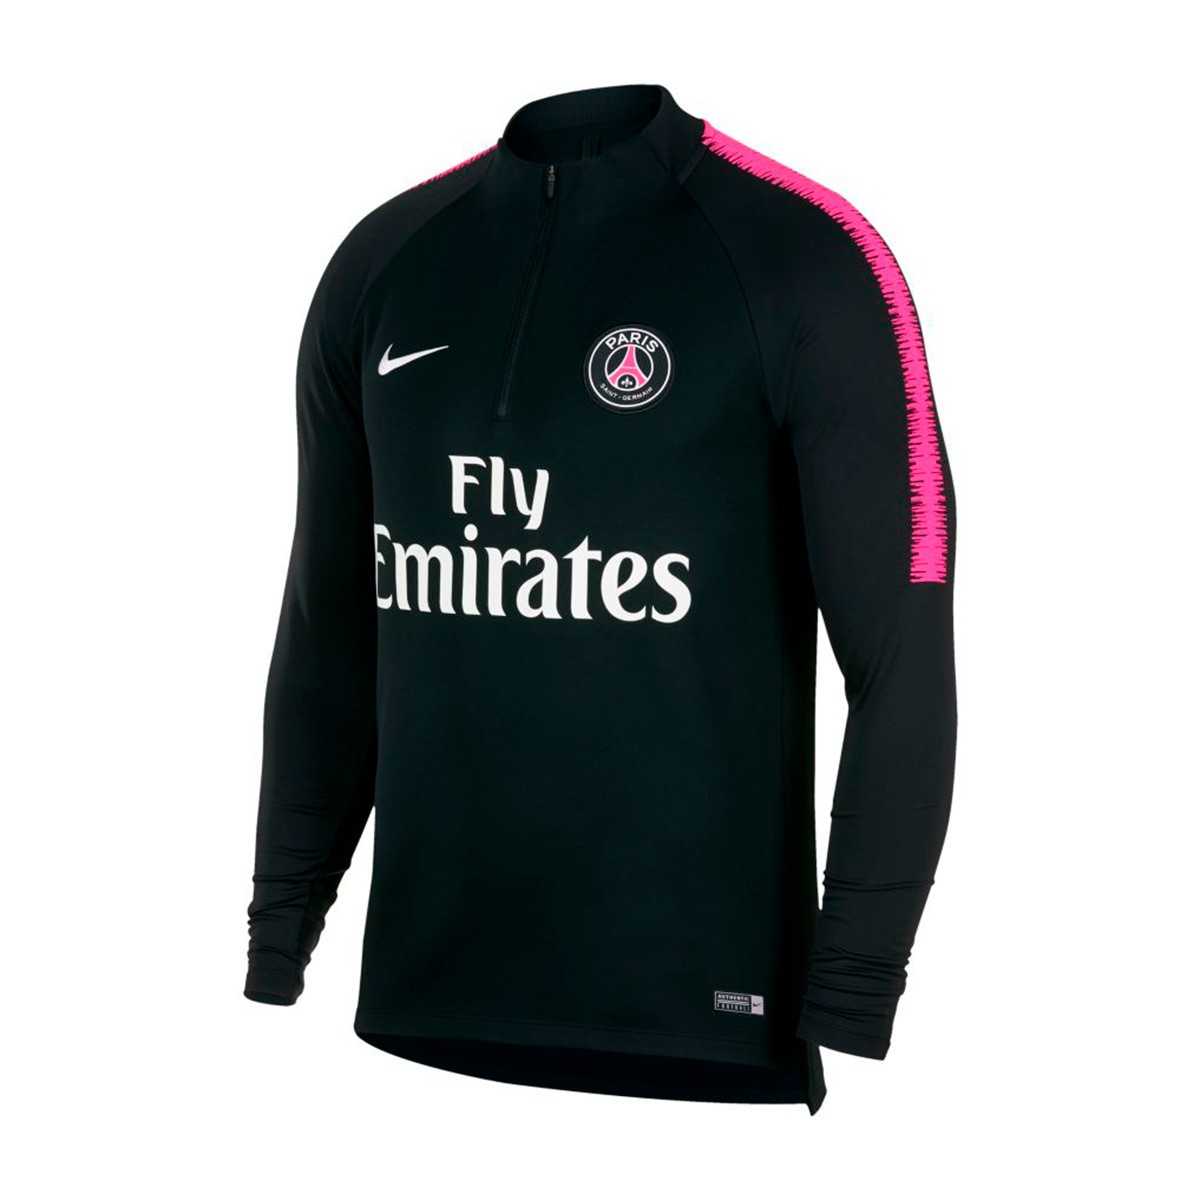 07bcde79c9b996 Sweatshirt Nike Paris Saint-Germain Dry Squad 2018-2019 Black-Hyper ...